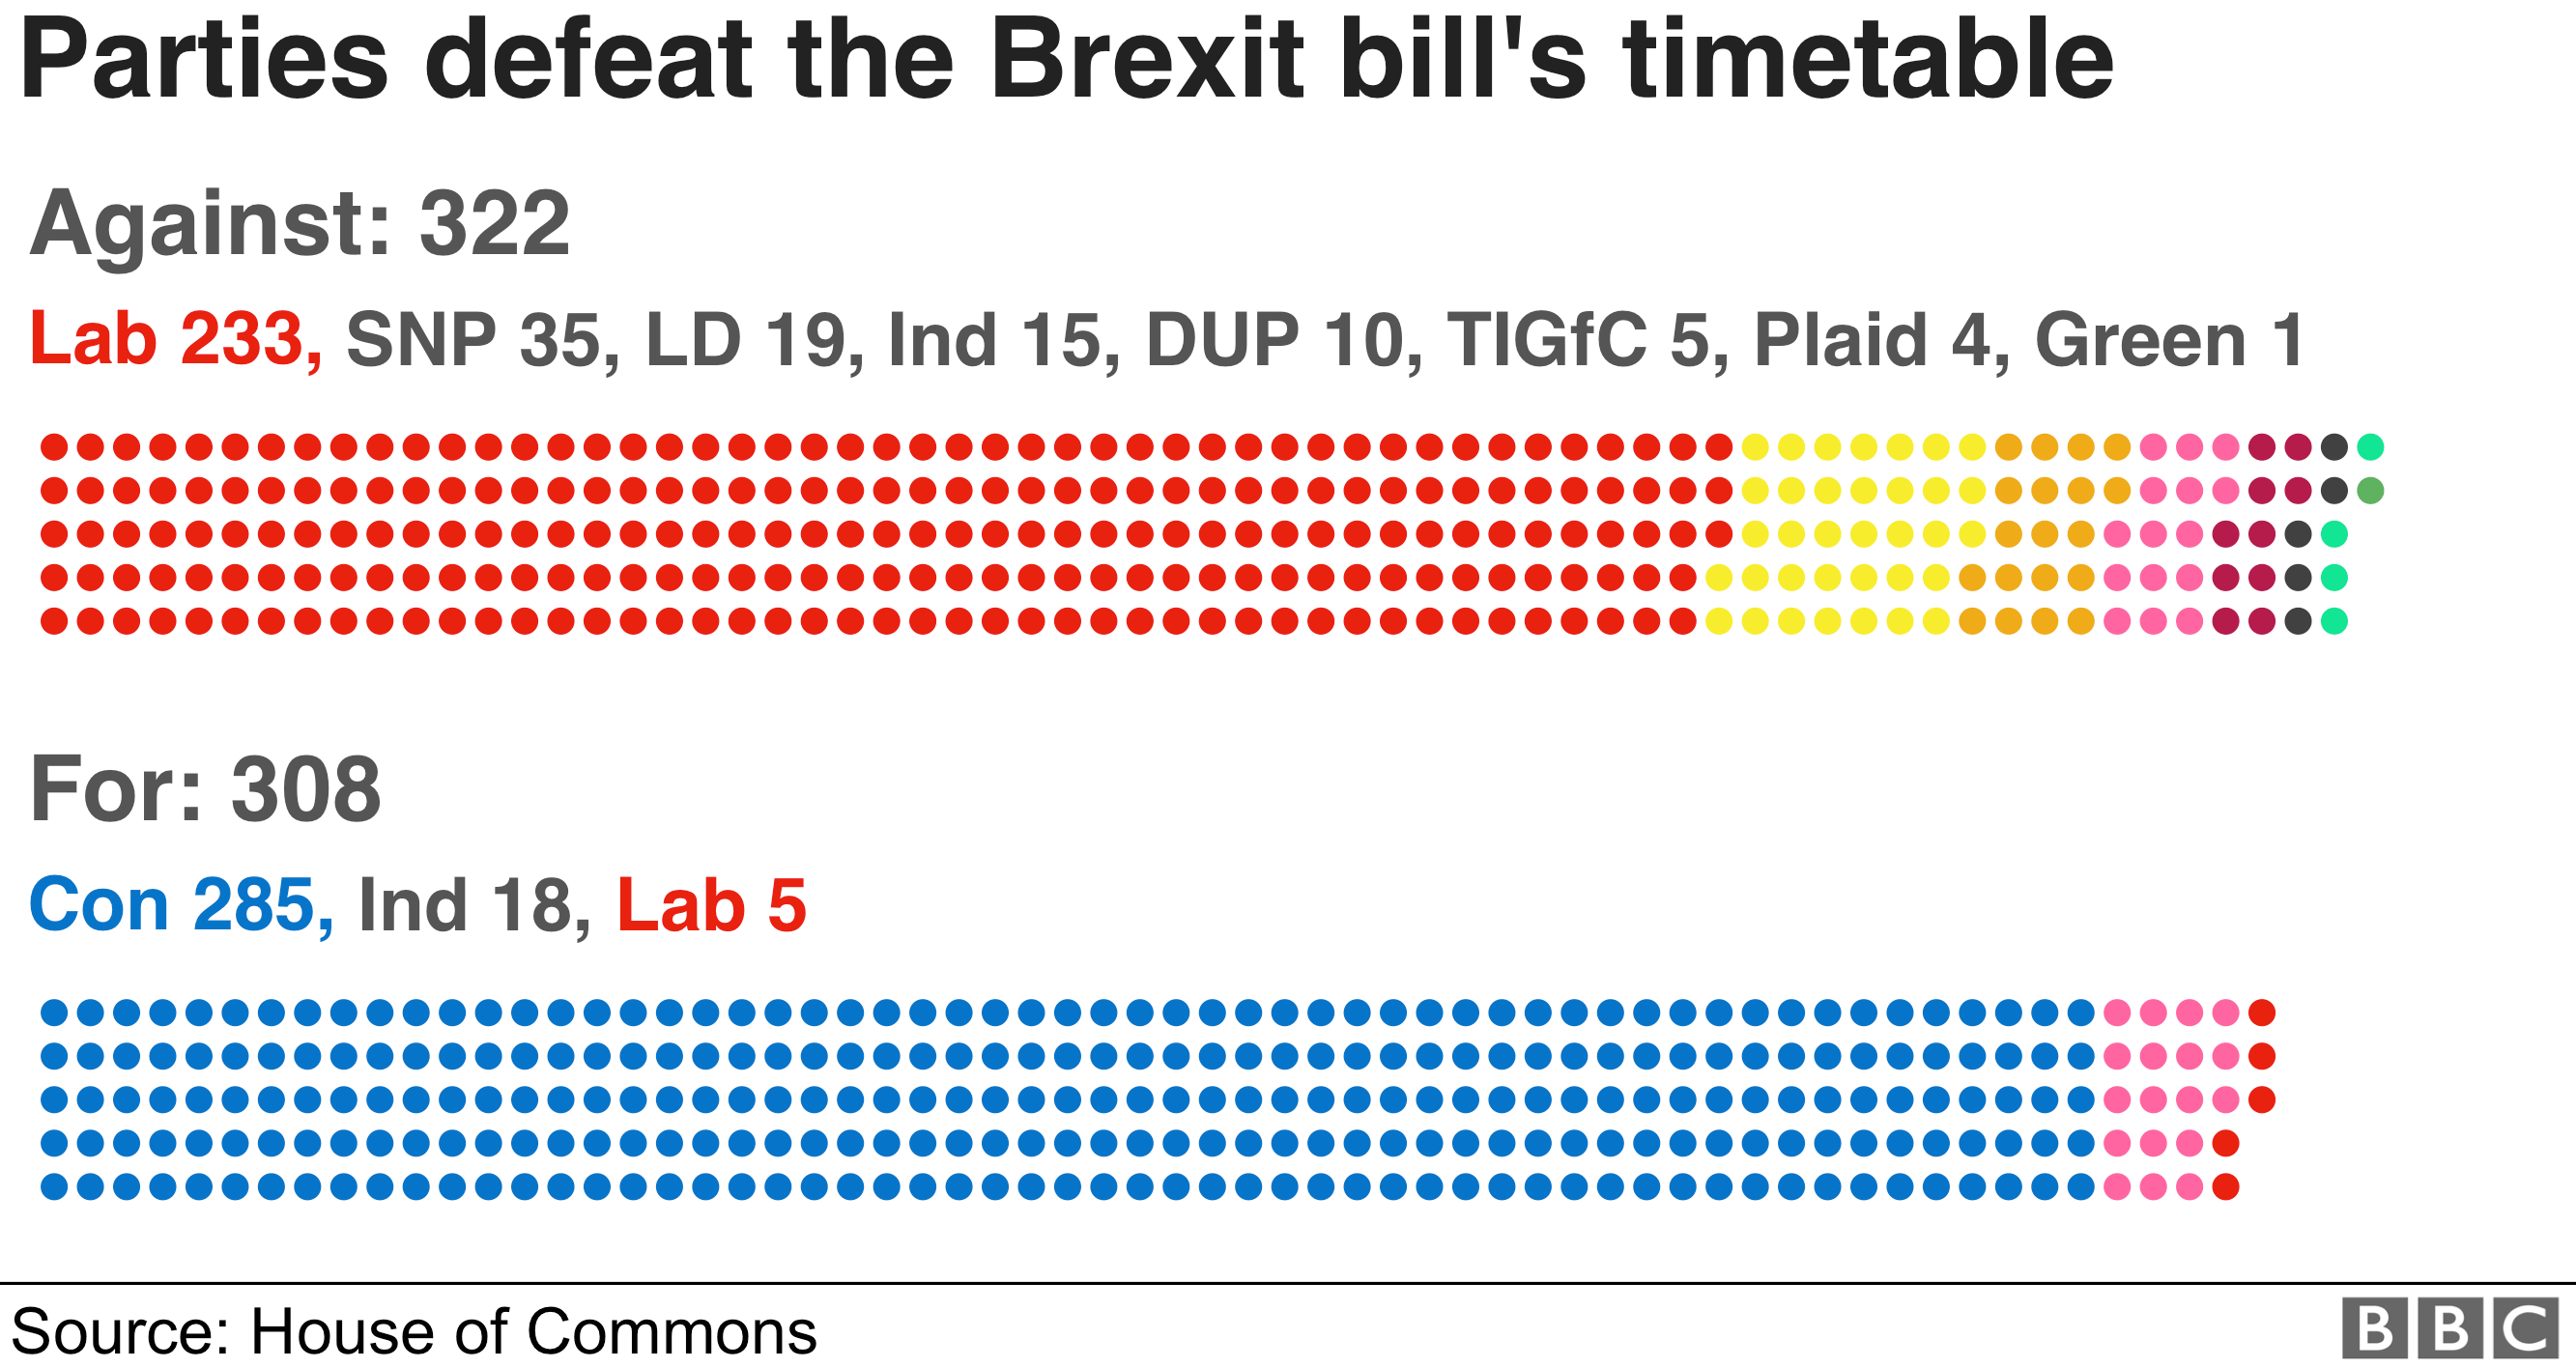 The government lost the vote on the proposed timetable for the bill by 308 votes to 322